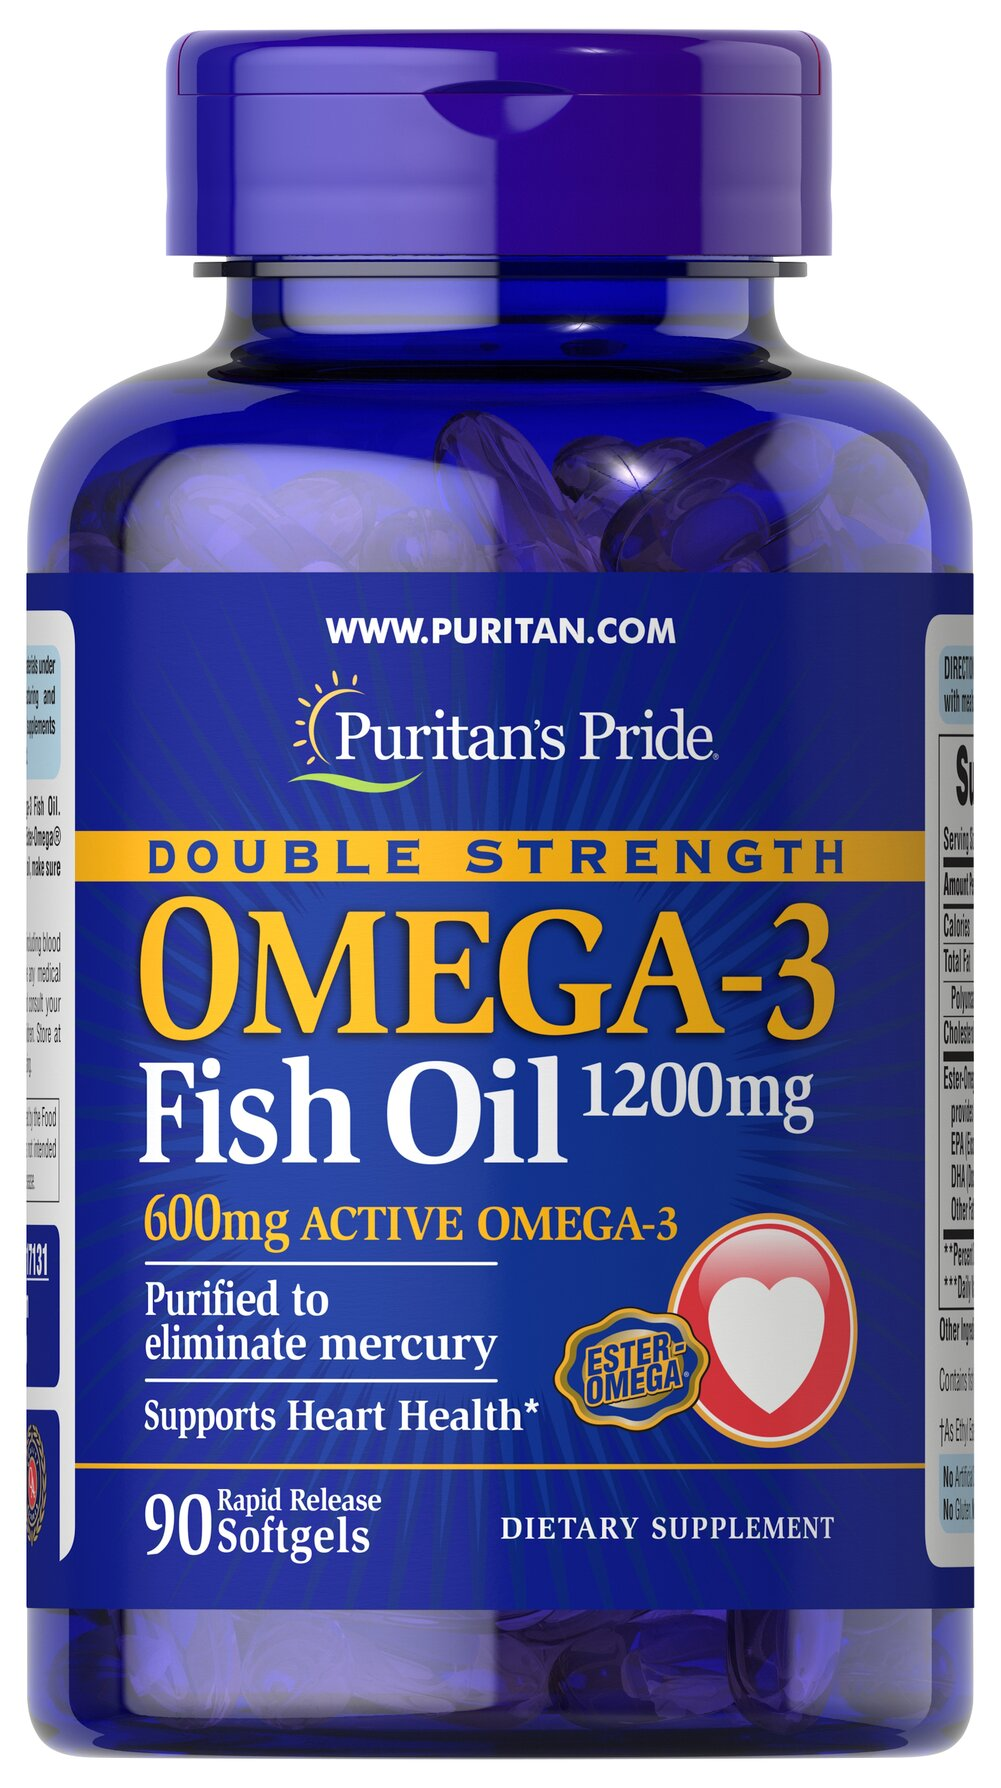 Double Strength Omega-3 Fish Oil 1200mg <p><span></span>Provides 600mg of Active Omega-3.</p> <p><span></span>Omega-3 fatty acids are important for heart health.**</p> <p><span></span>Purified to eliminate mercury.</p> <p>Each double strength Omega-3 fish oil softgel contains 1200mg of Ester-Omega® Fish Oil. This provides 600mg of Total Omega-3 Fatty Acids comprising of DHA, EPA and other fatty acids. Supportive b